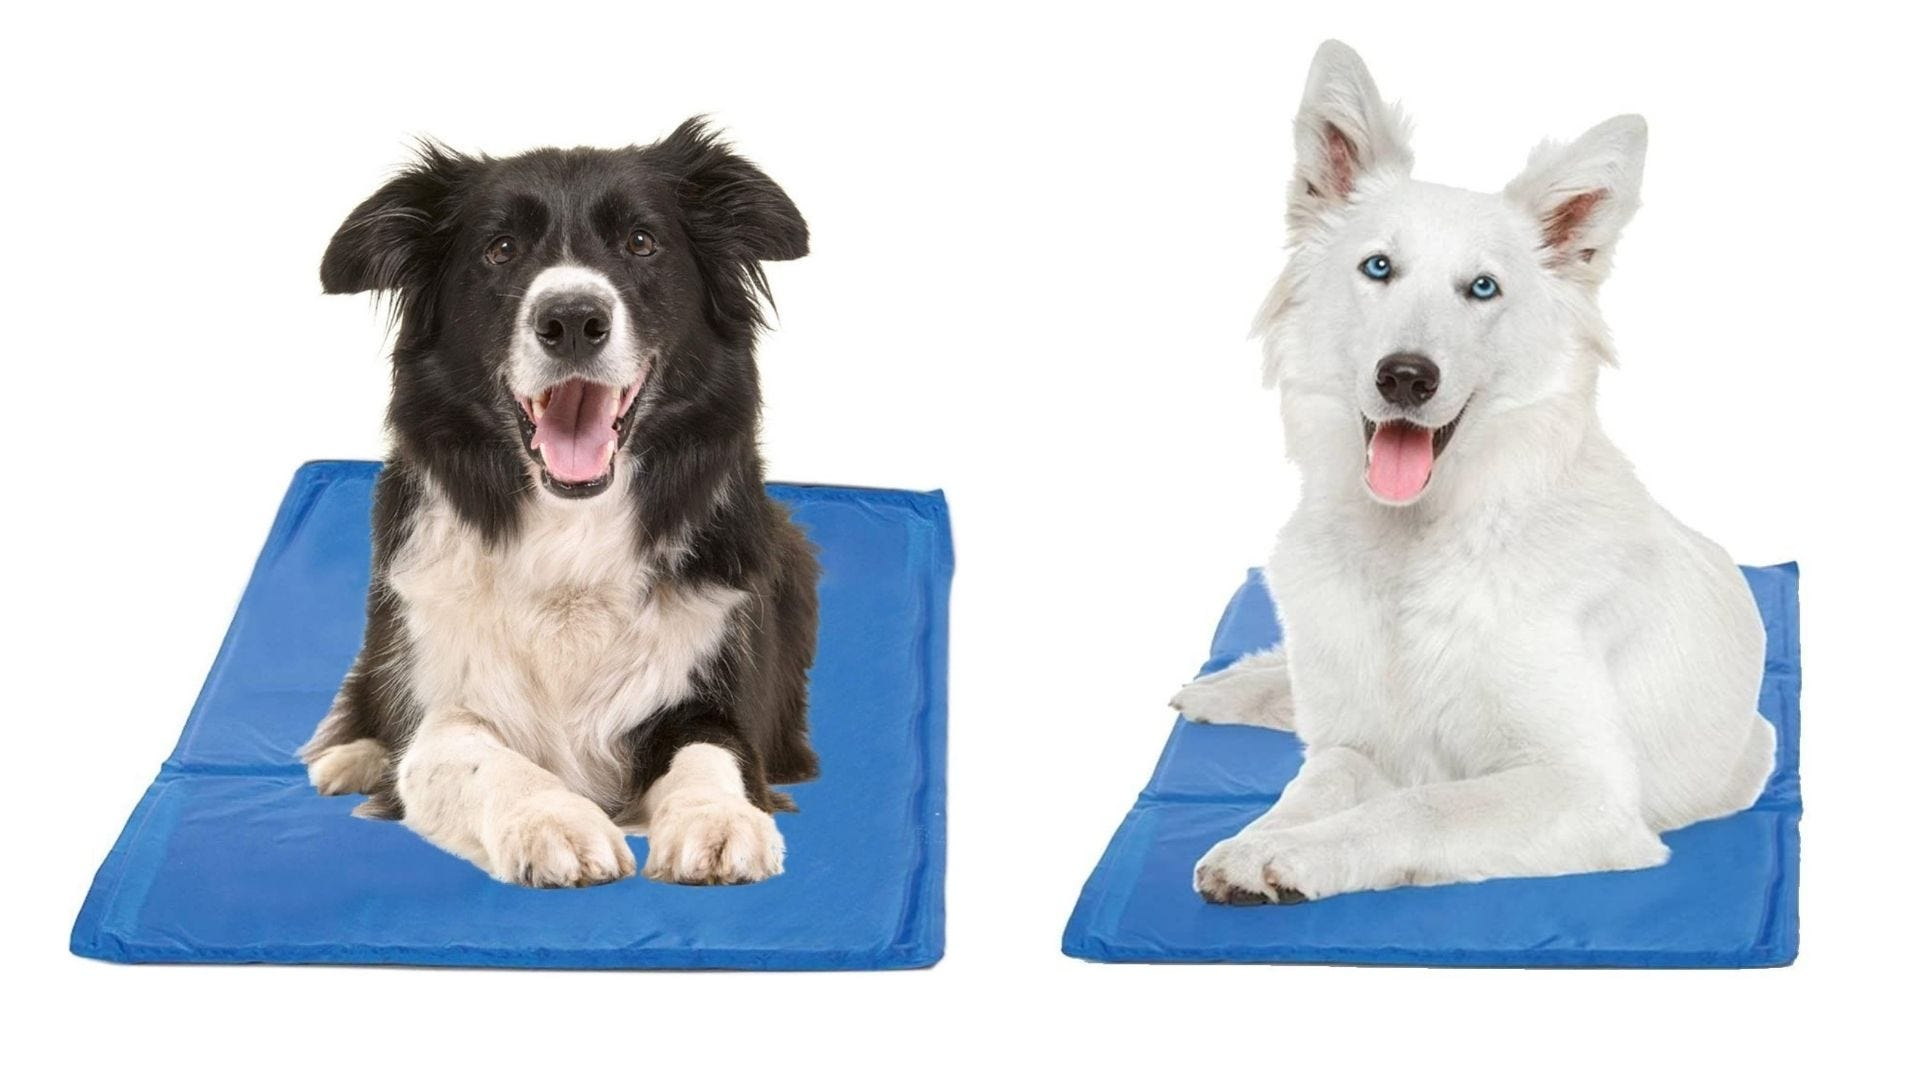 Two dogs sit on blue mats.